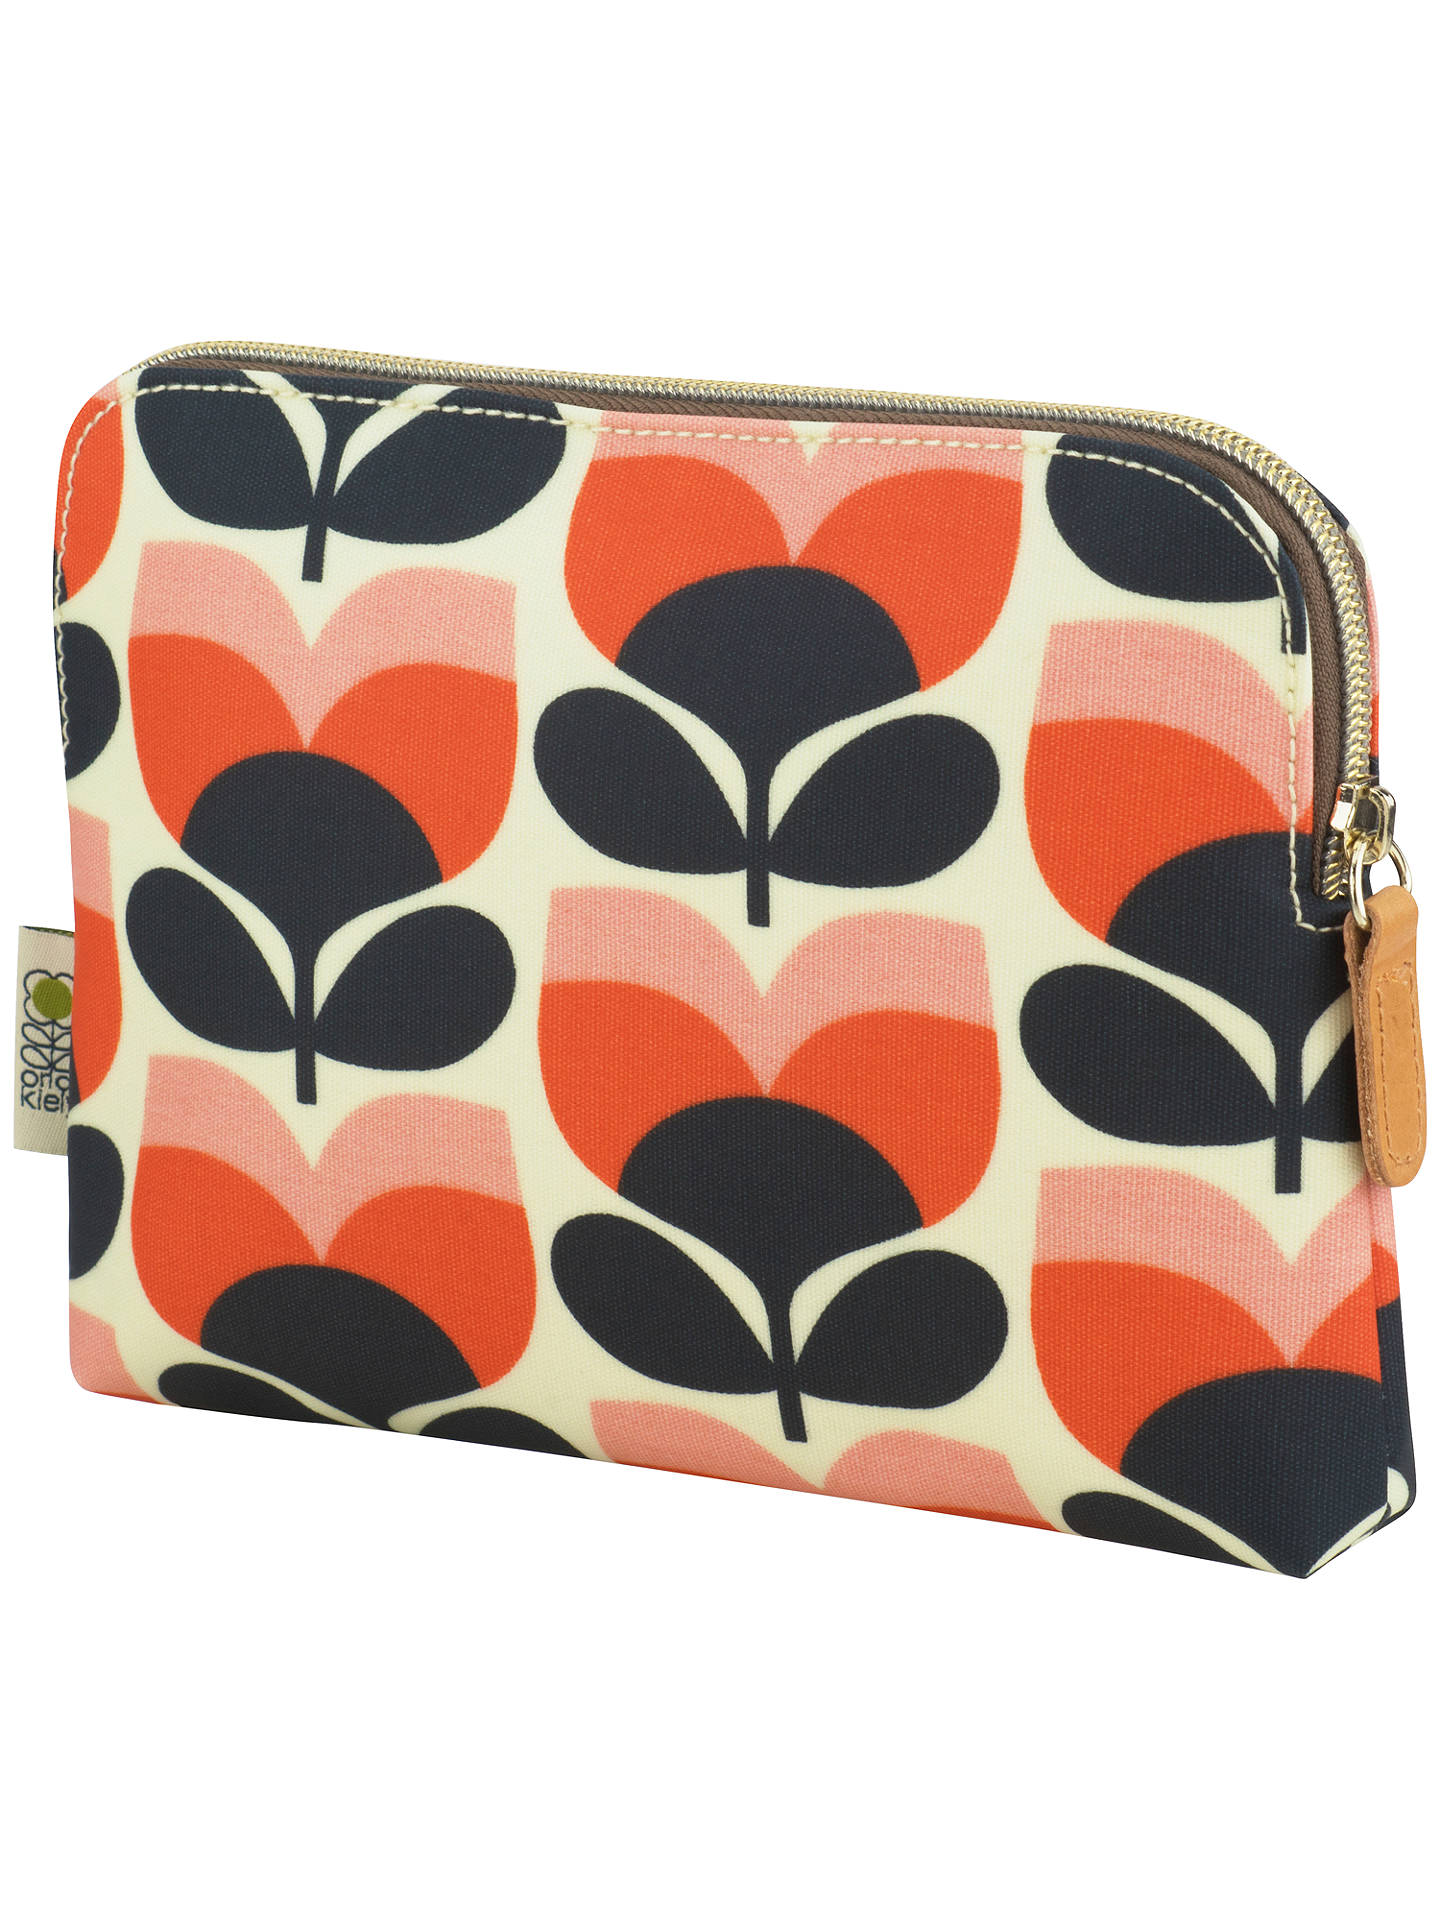 Orla Kiely Cosmetic Spray Purse Gift Set New Will Post For 2 95